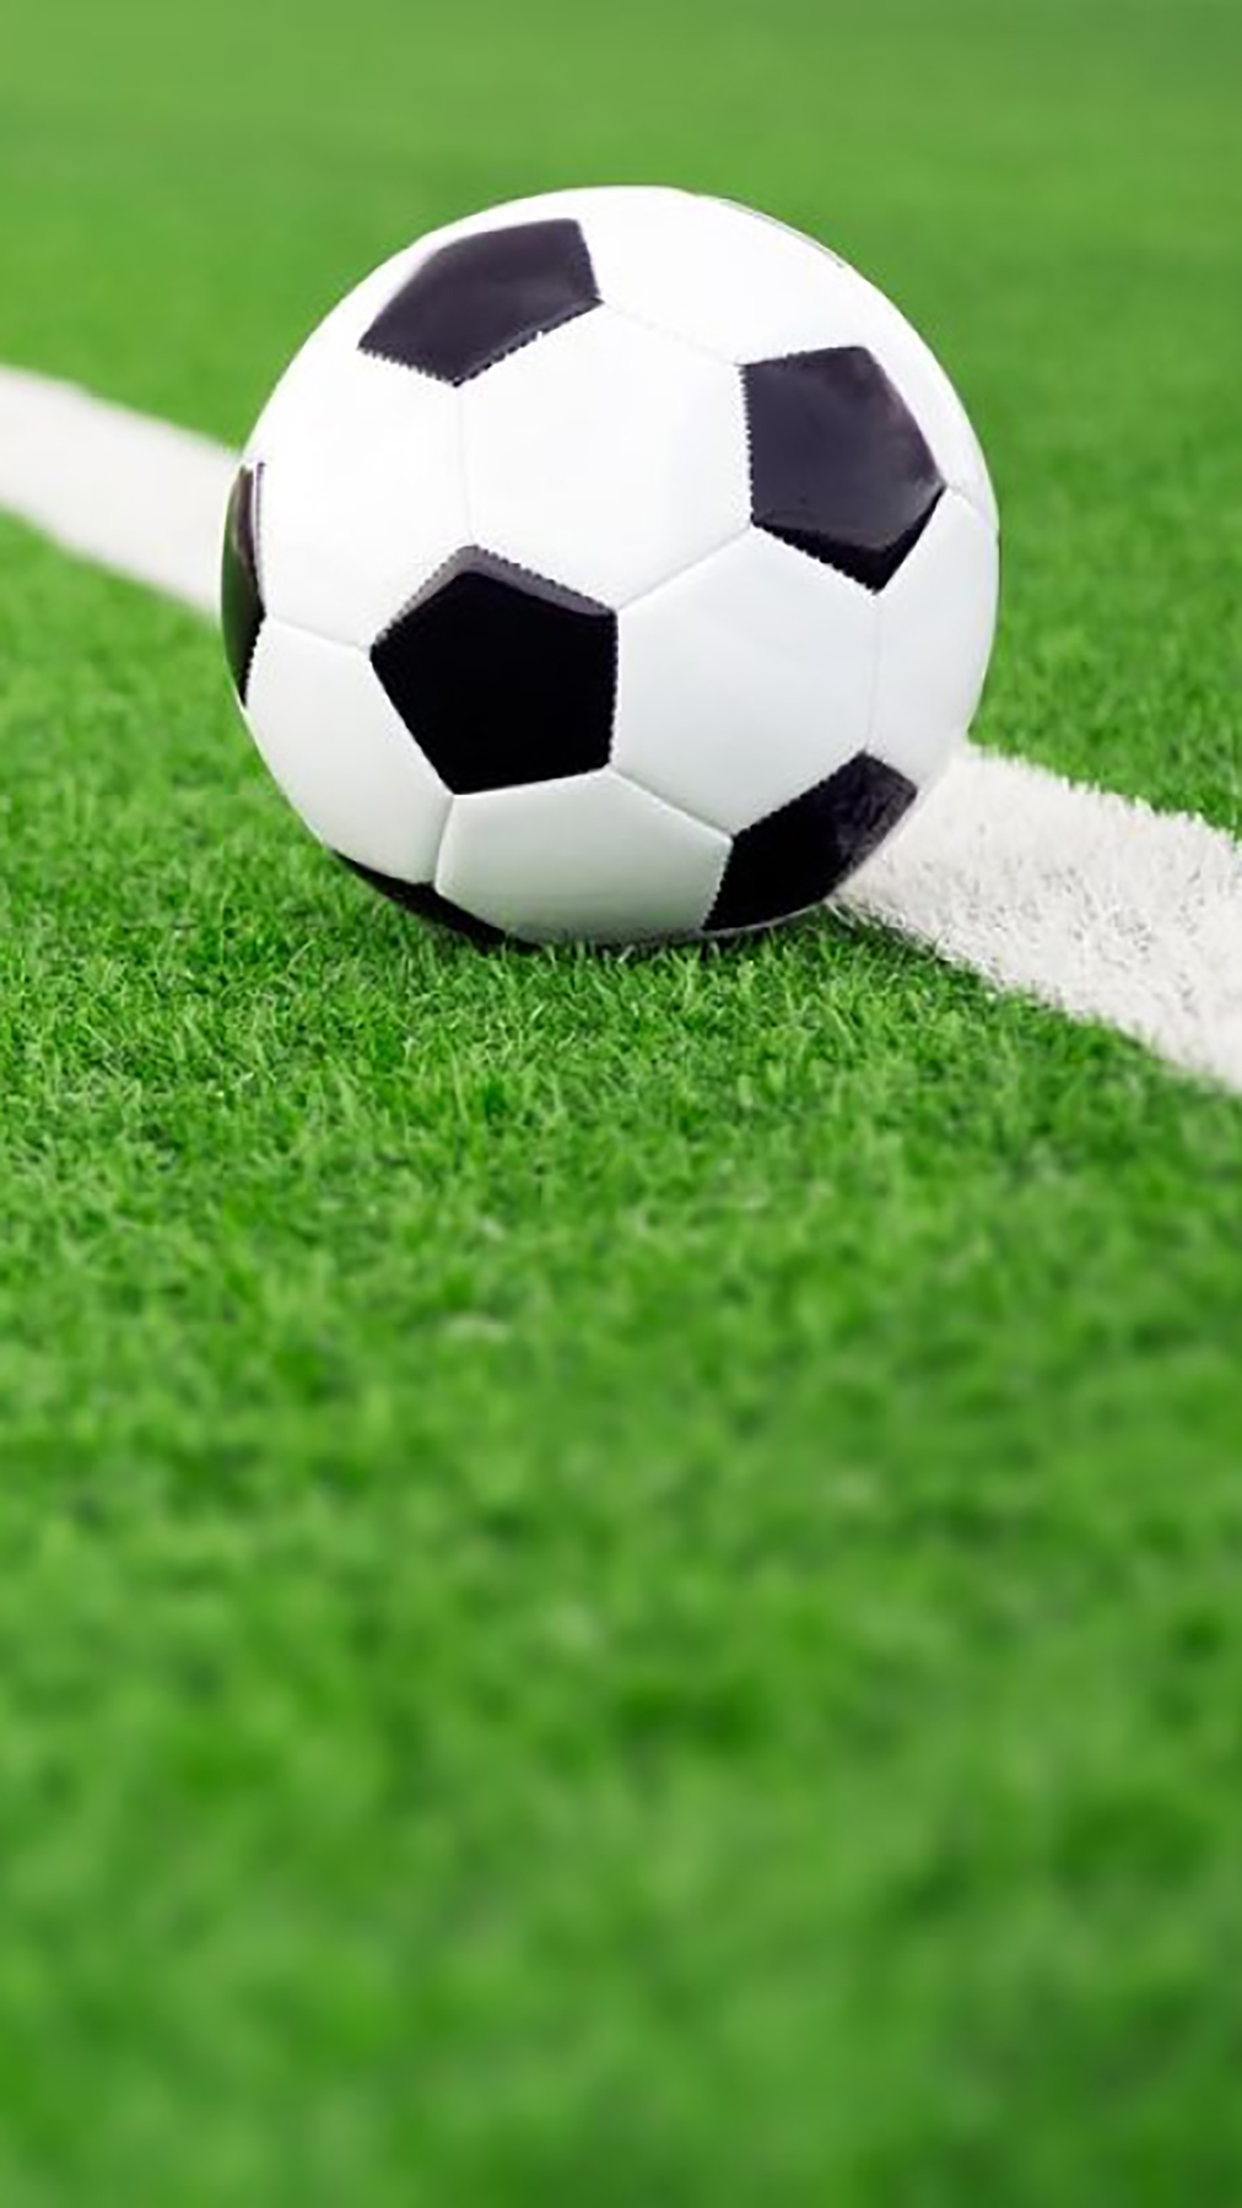 soccer ball 2 wallpaper for iphone x 8 7 6 free